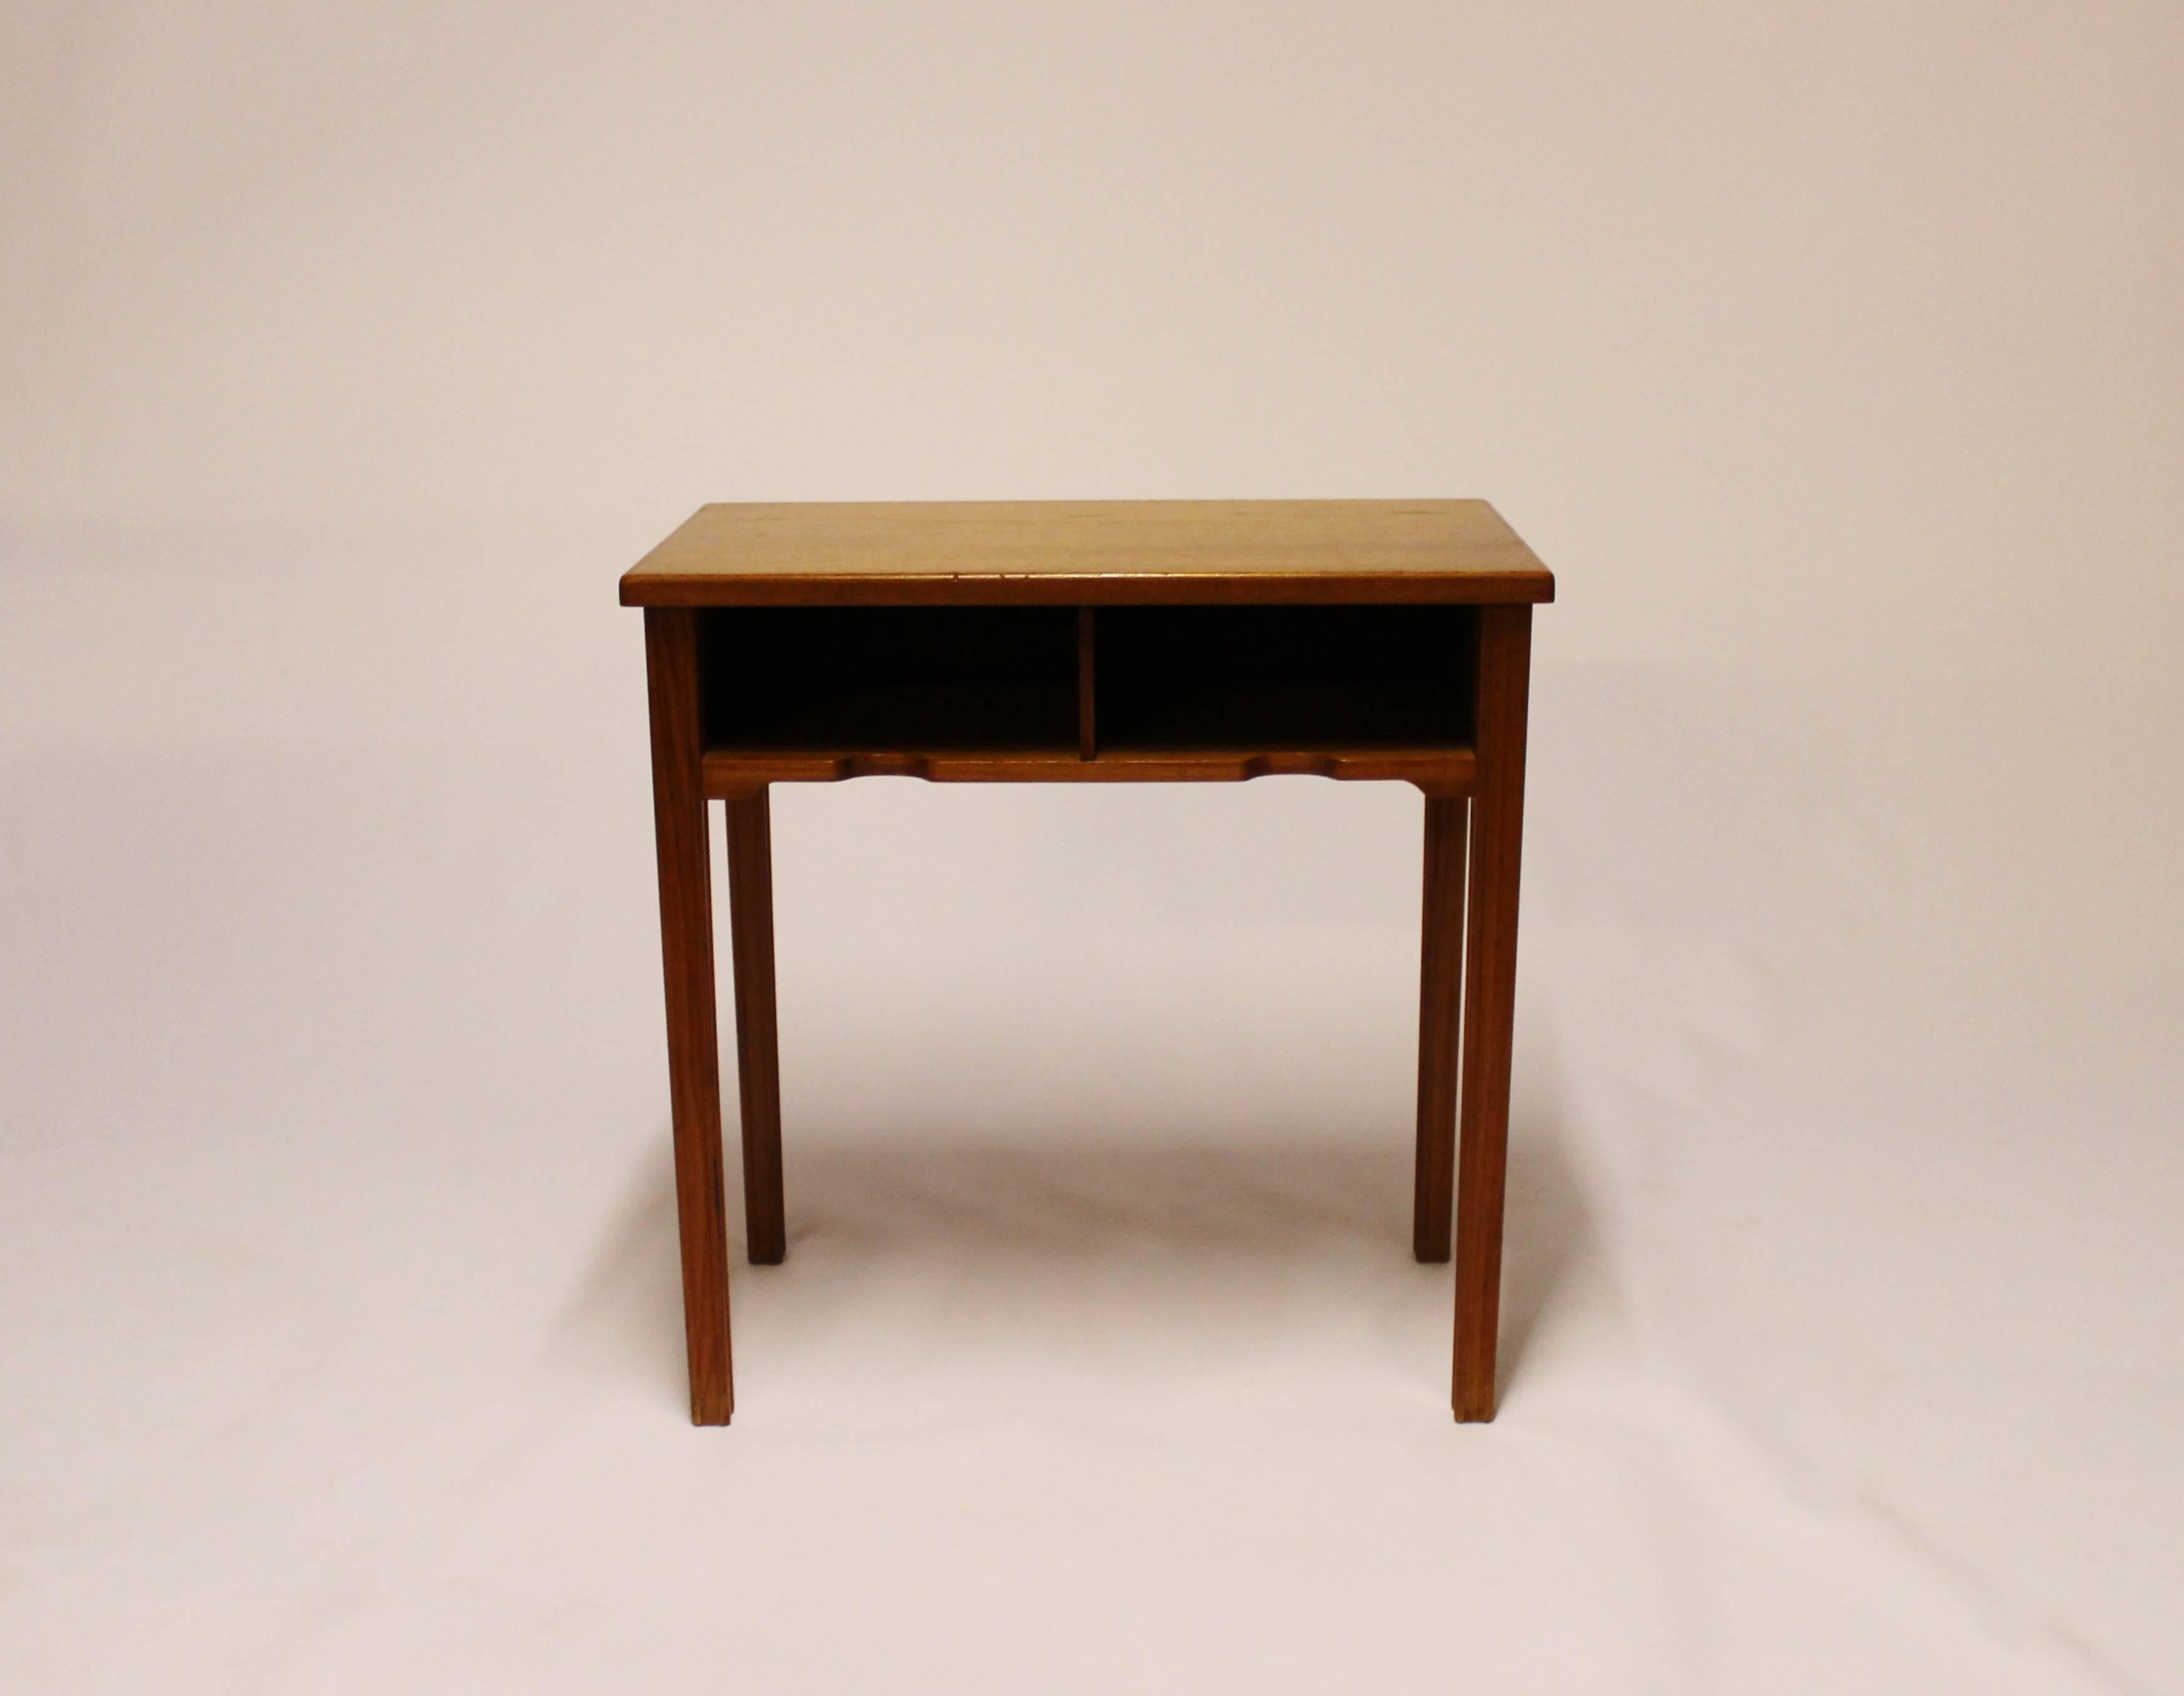 Small Bedside Table In Teak Of Danish Design By Flexi Møbler, 1960s